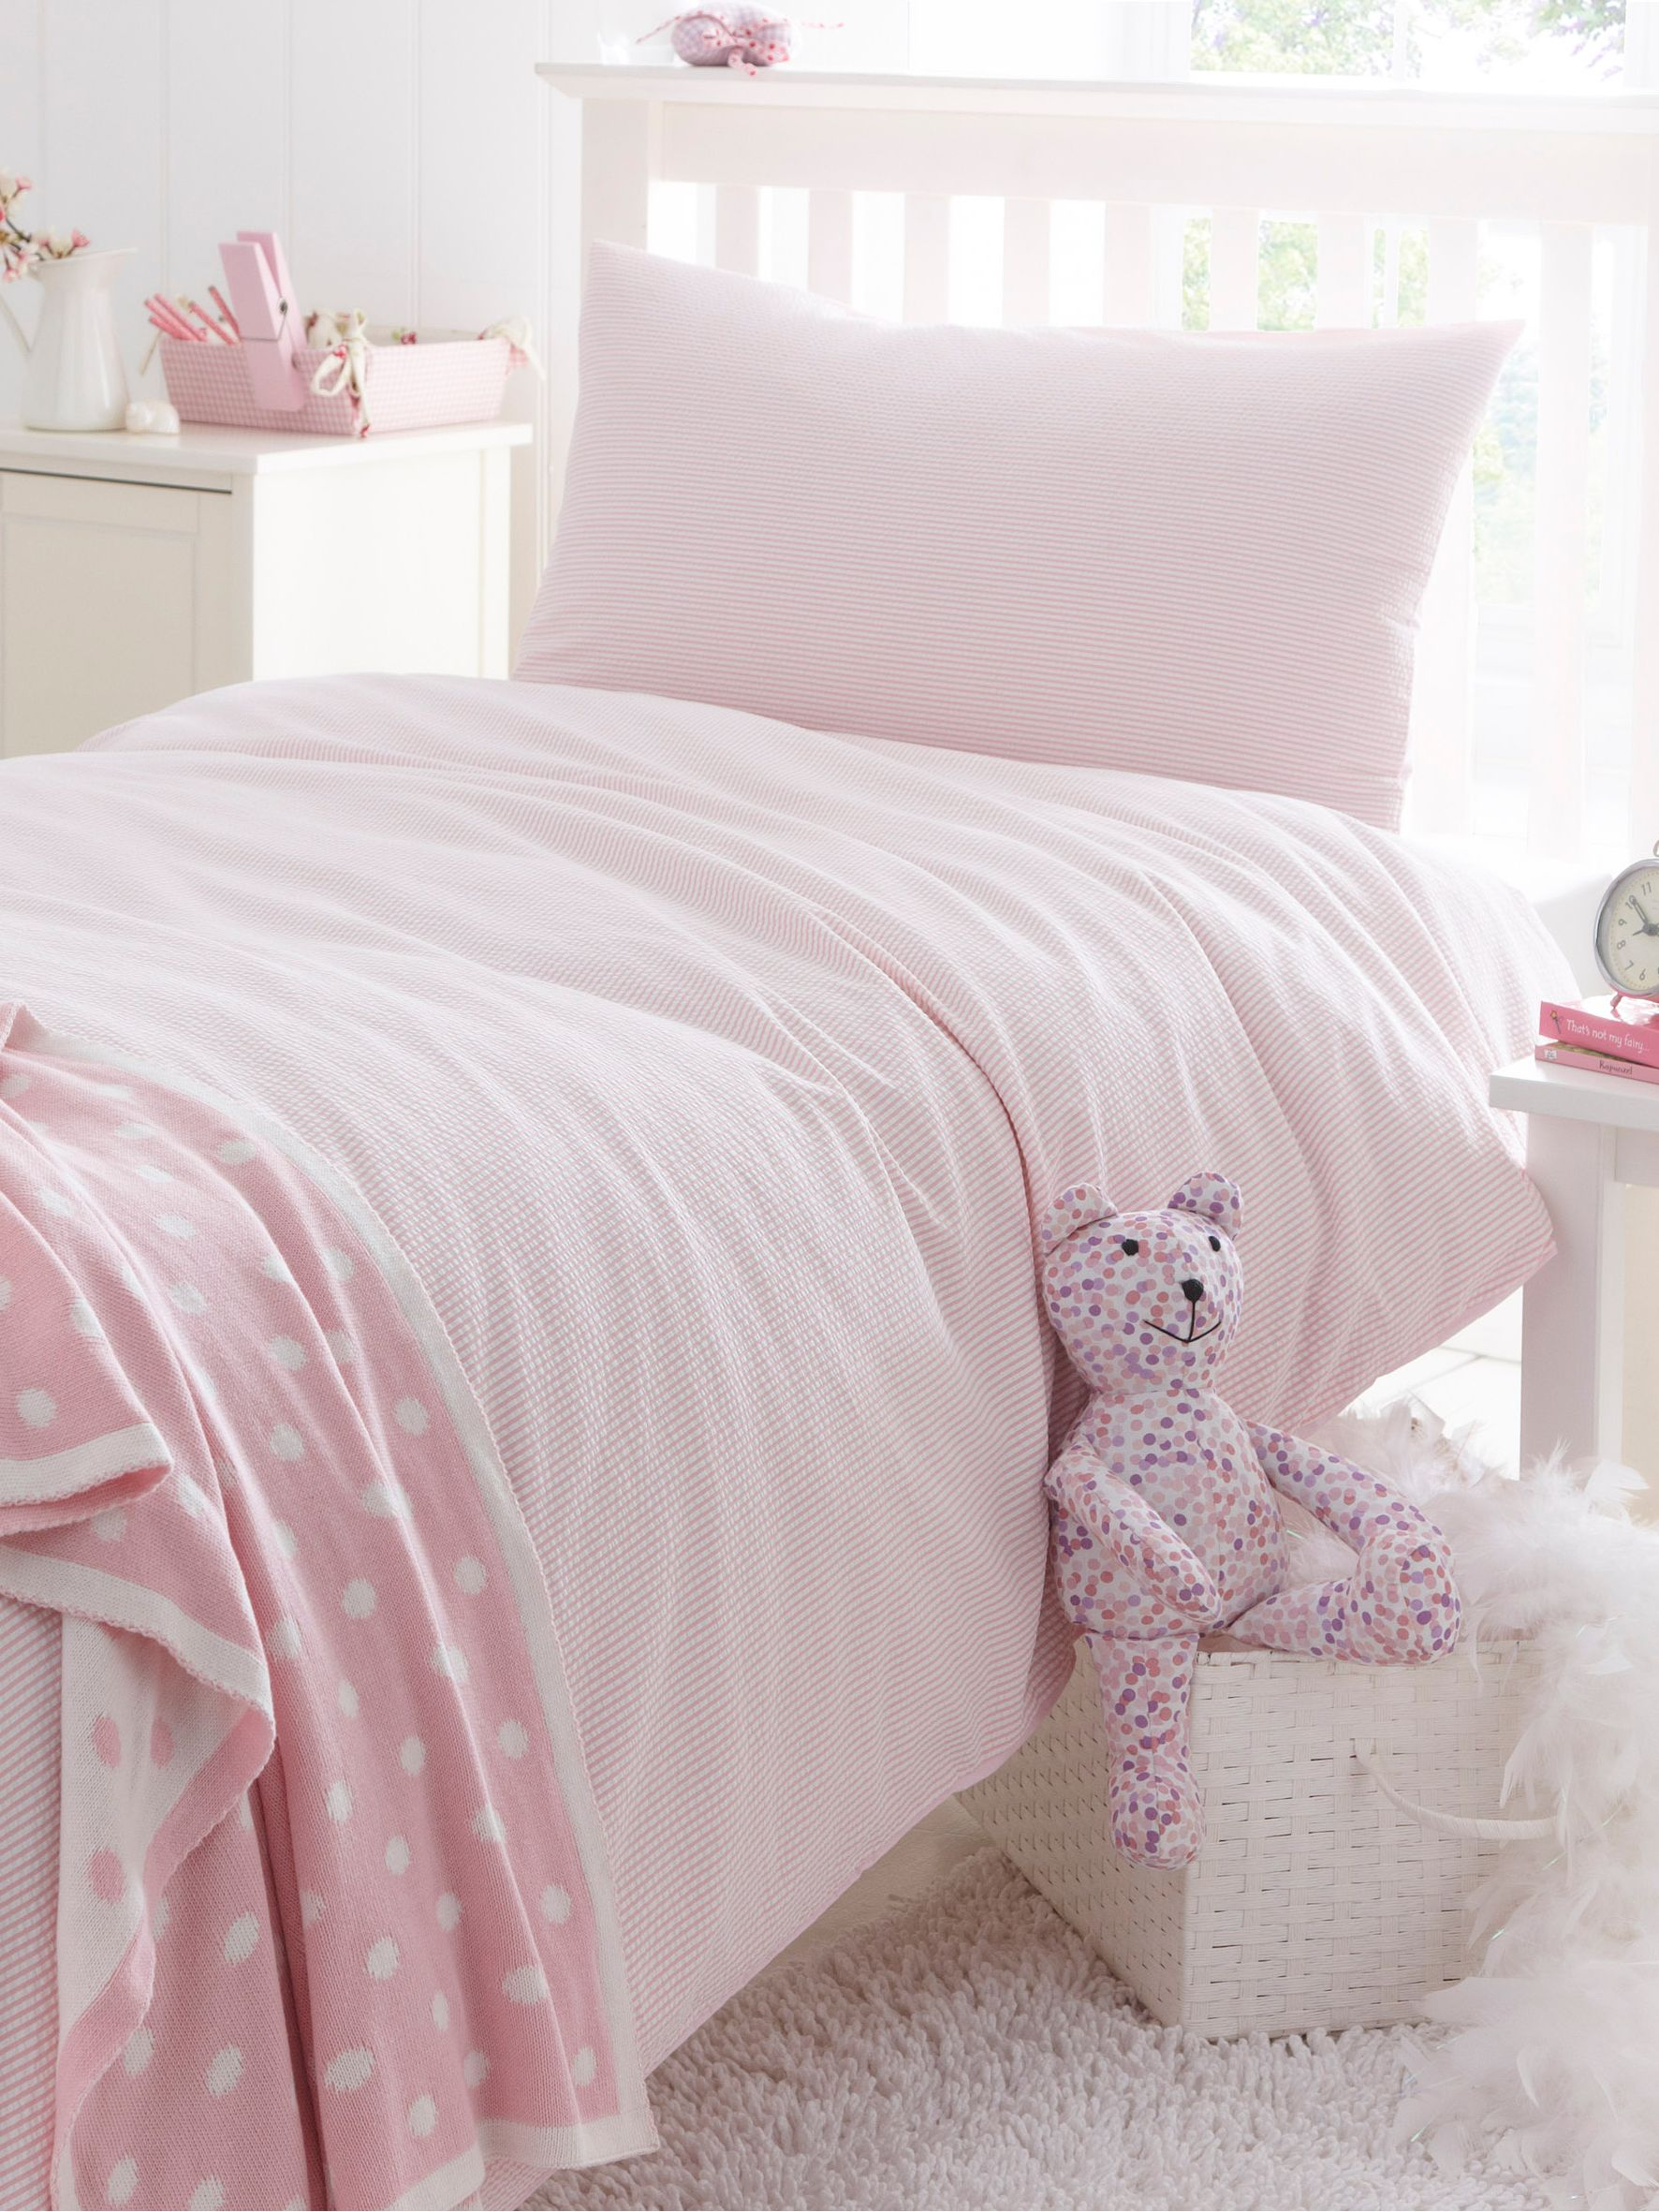 Seersucker double duvet cover set pink and white